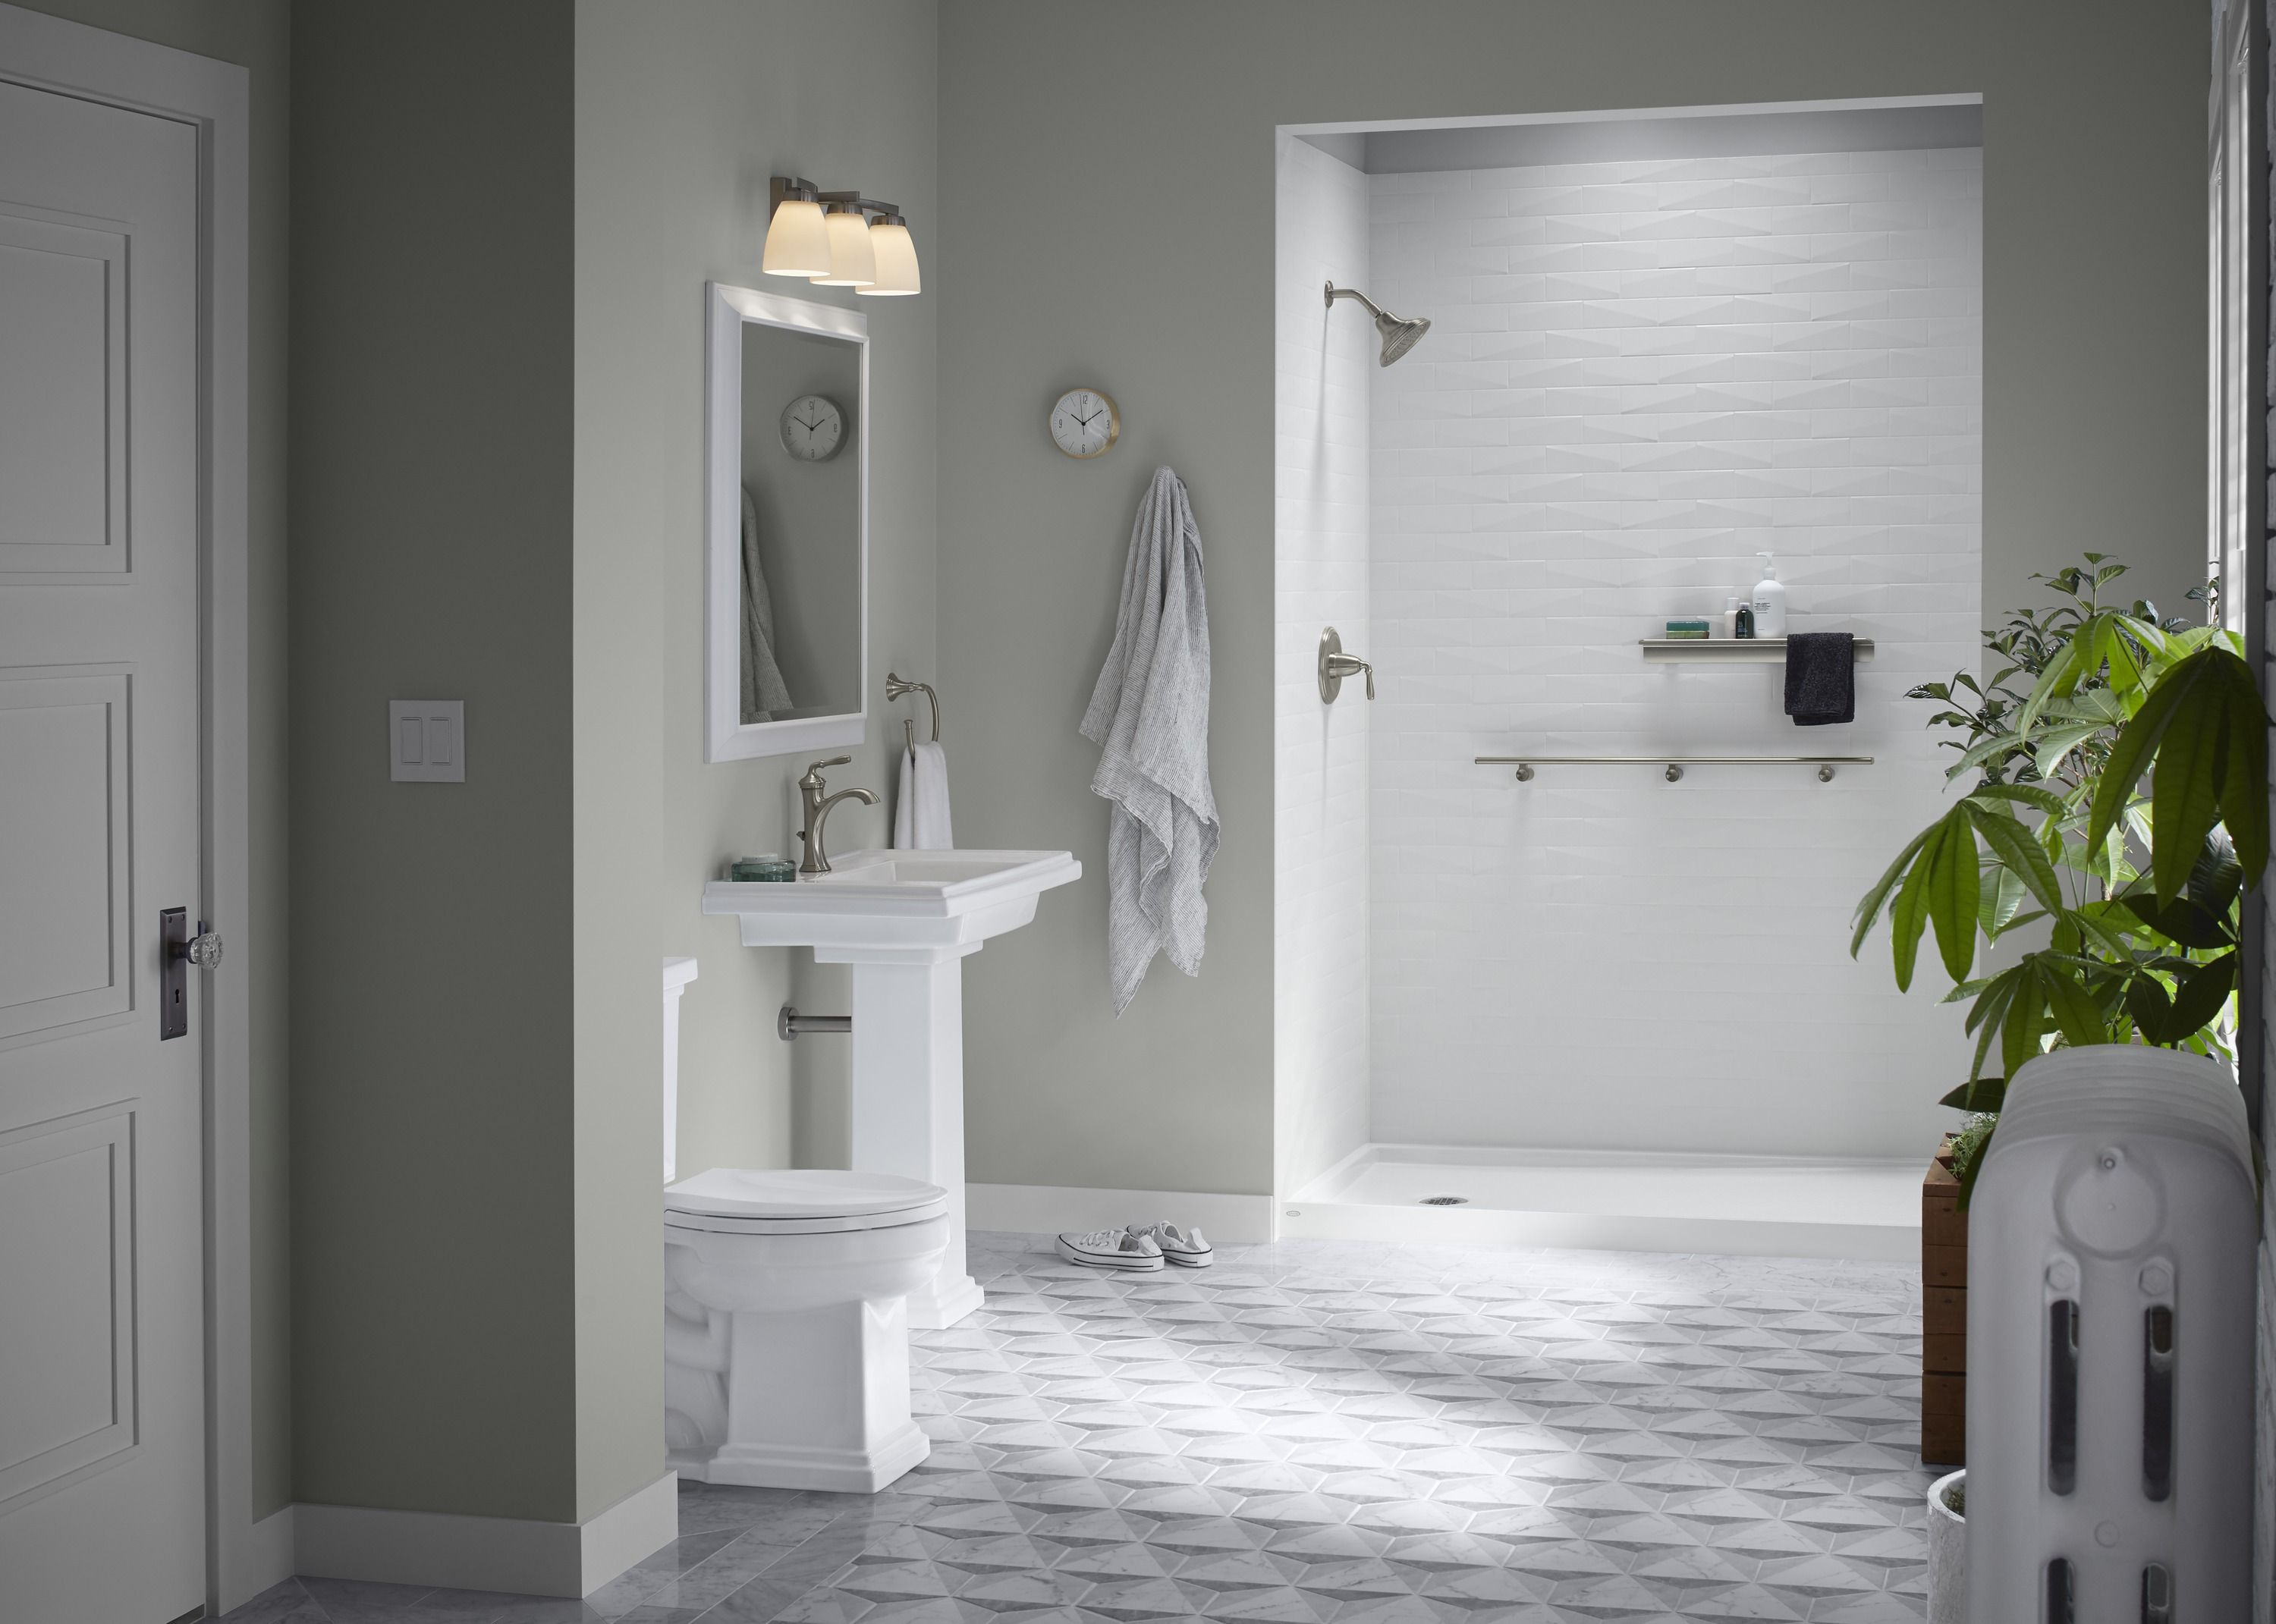 Need A New Shower Or Tub Area Contact Maxhome Today For Your New Kohler Luxstone Shower 1 Day Installation Plus 0 I Bathrooms Remodel Bathroom Cost Remodel